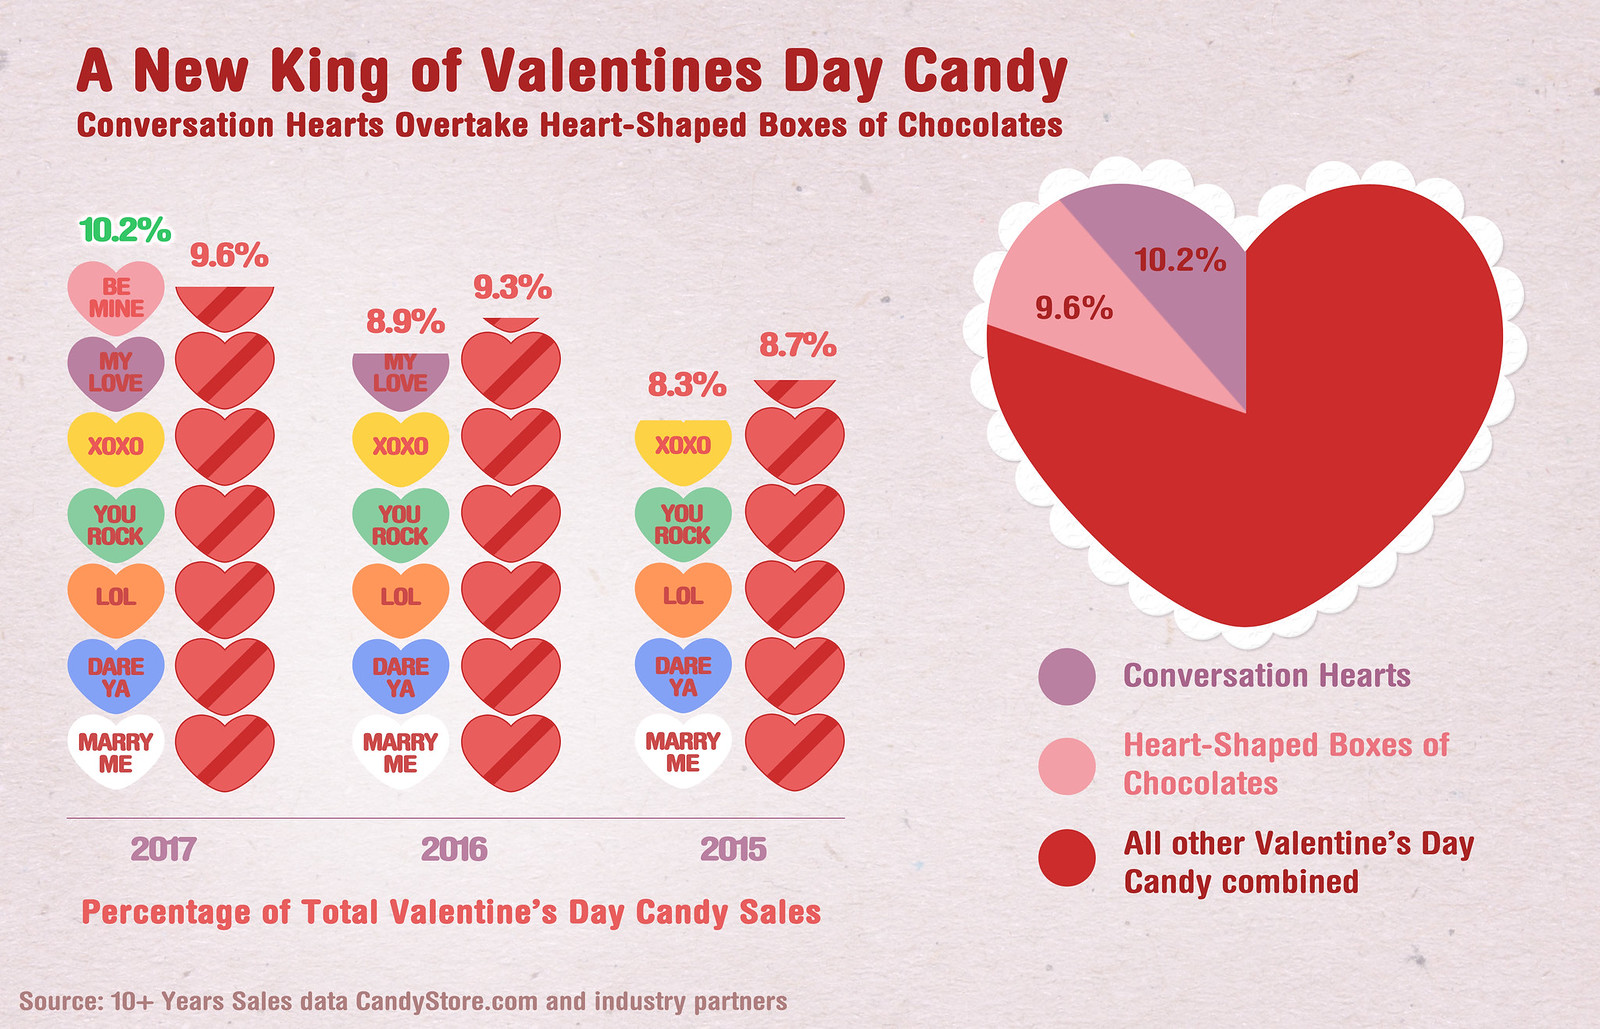 Valentine's Day Candy Data from CandyStore.com